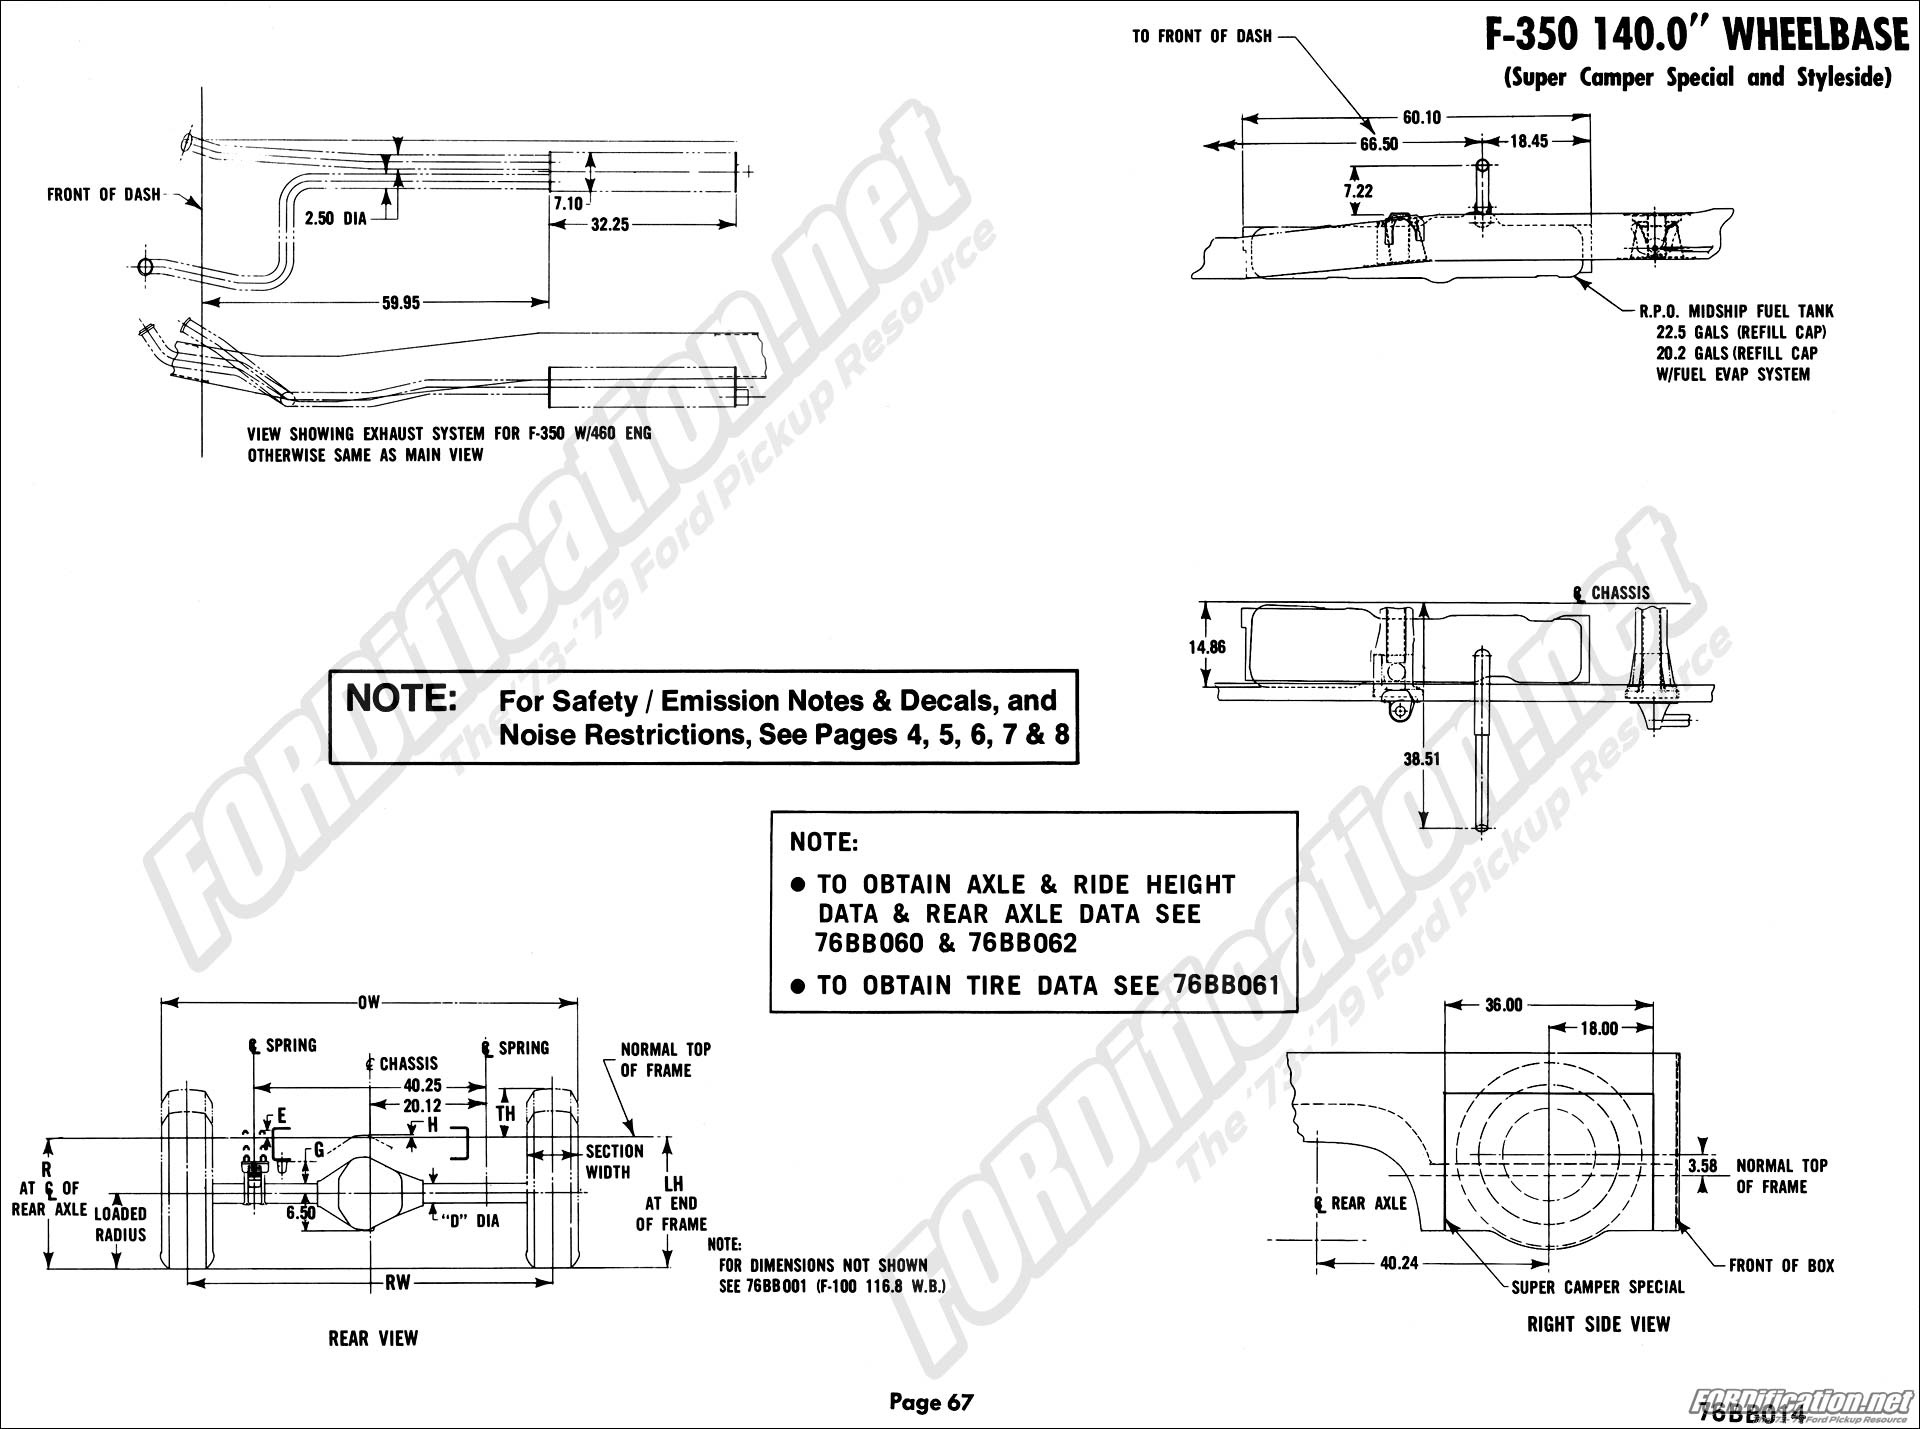 1979 ford f350 specs